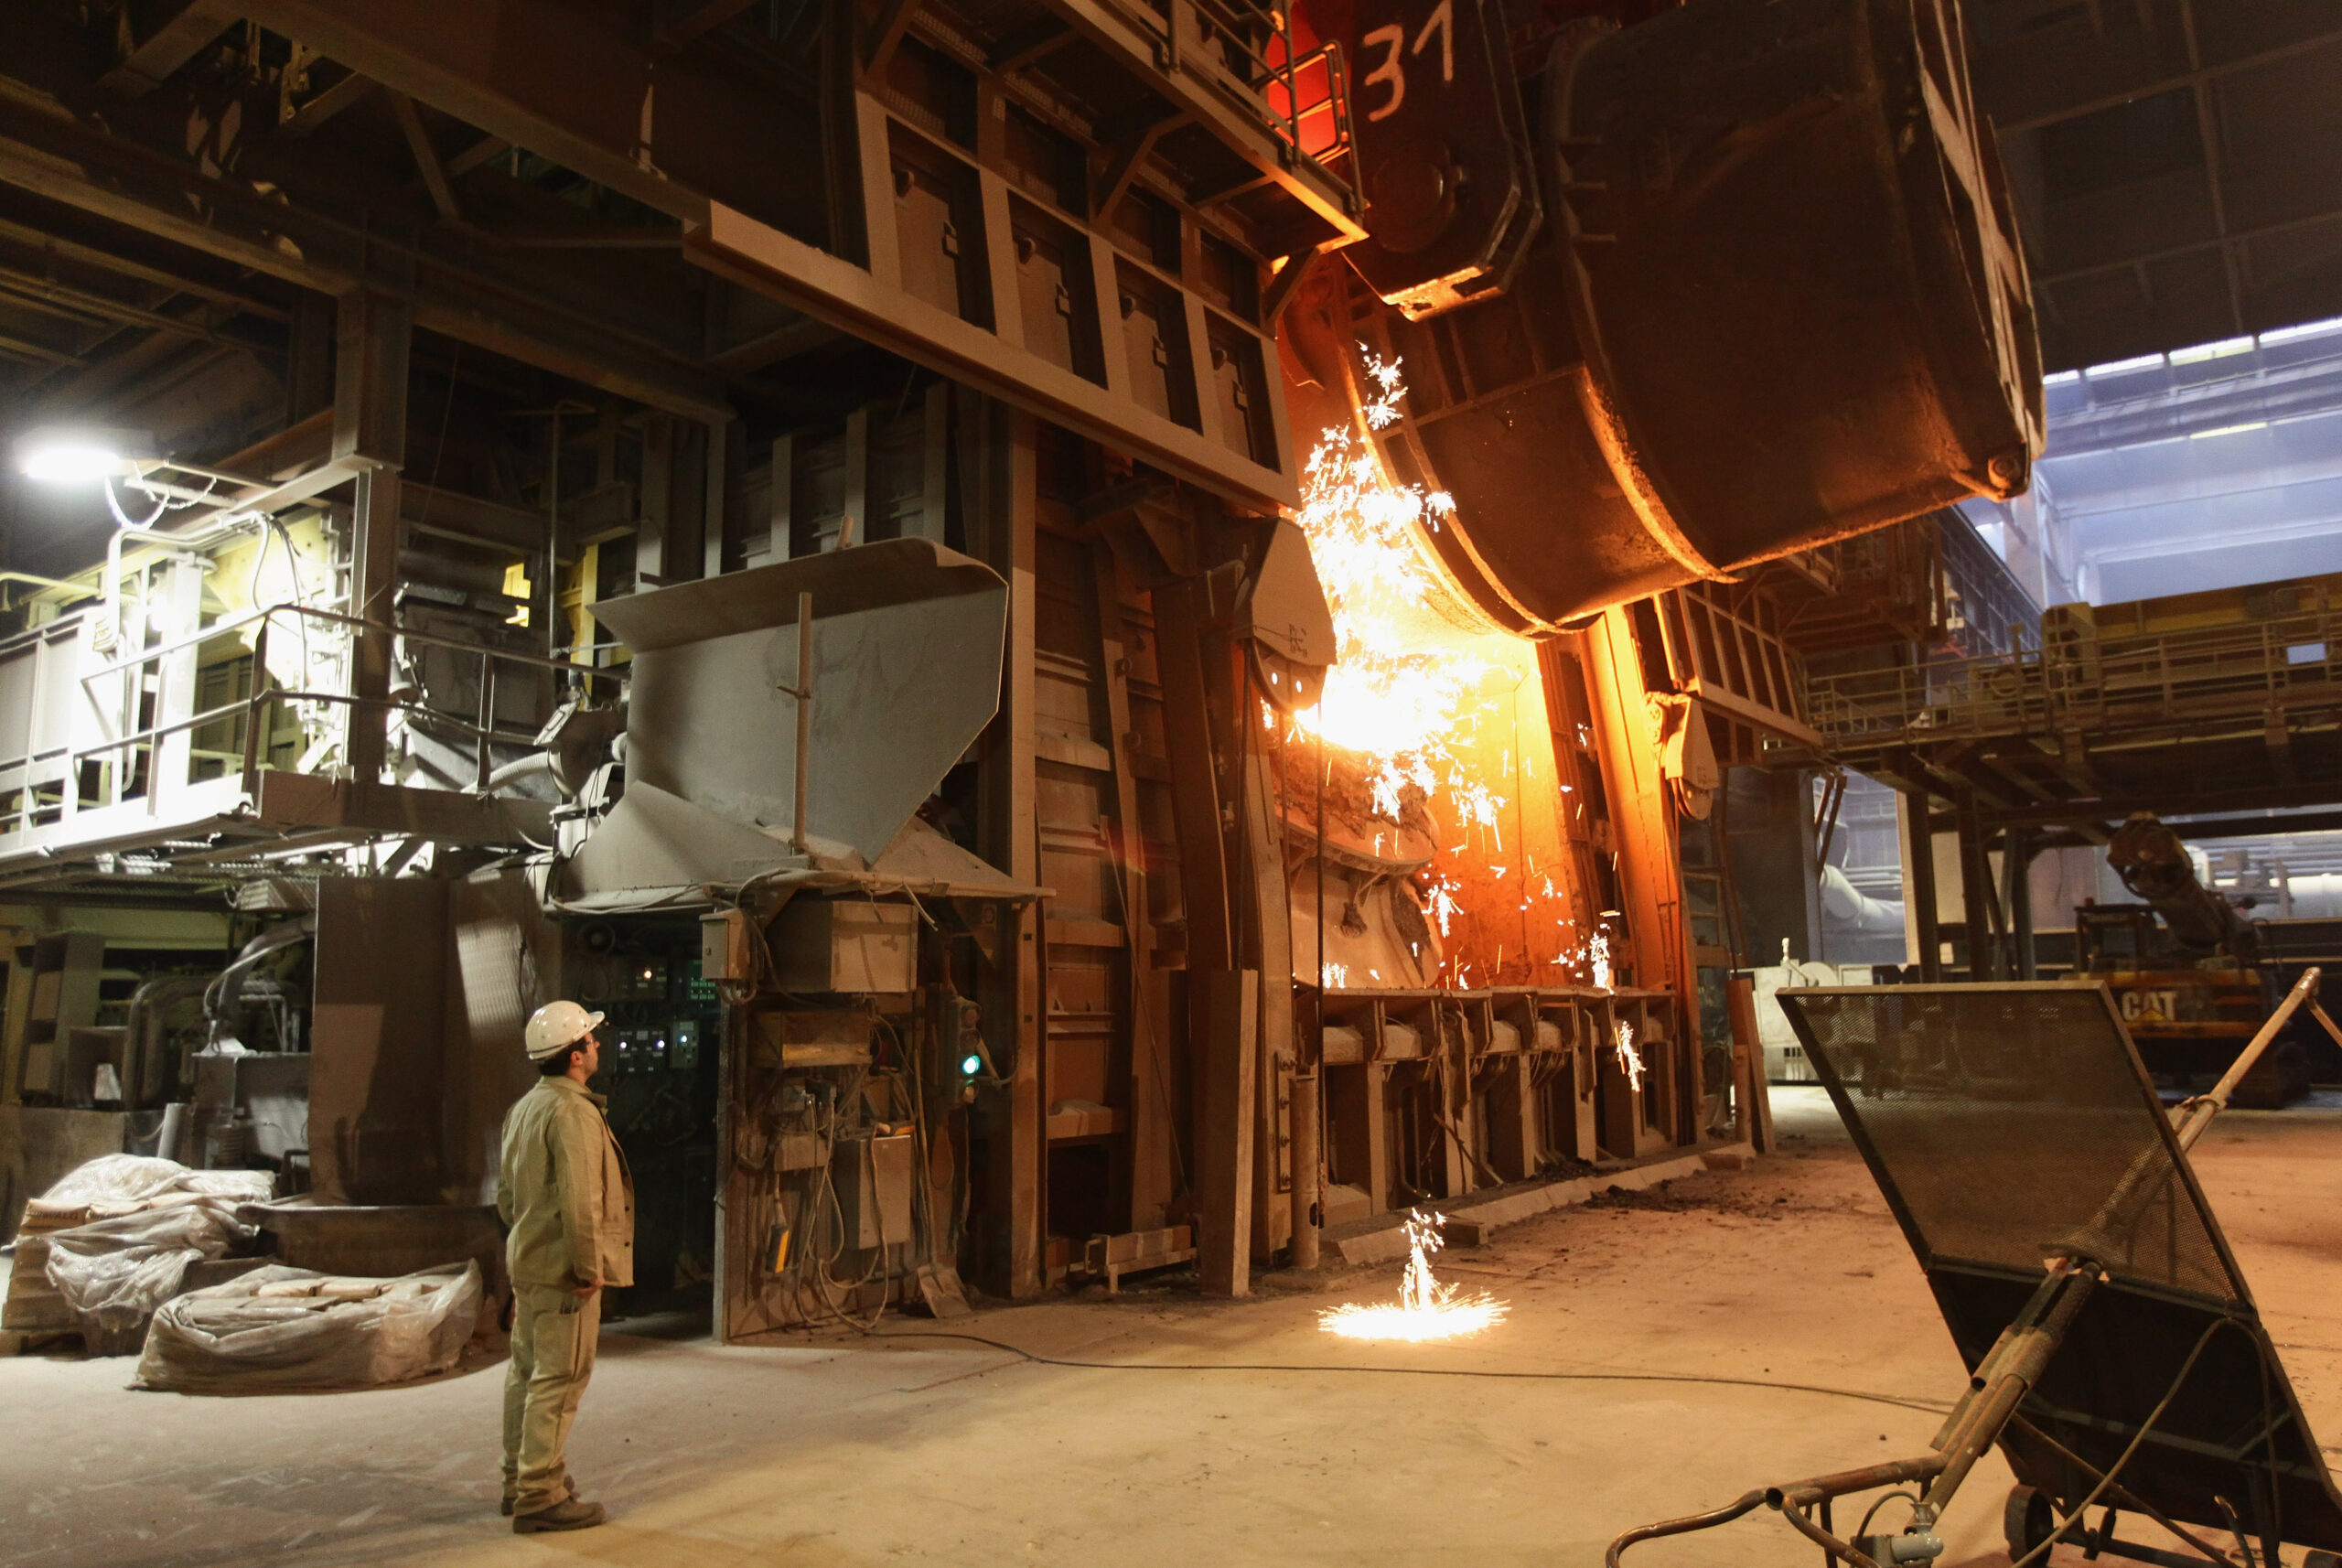 A worker watches as molten iron flows into a furnace for purification and alloying to become steel at the ThyssenKrupp steelworks on Jan. 13, 2010 in Duisburg, Germany. Credit: Sean Gallup/Getty Images